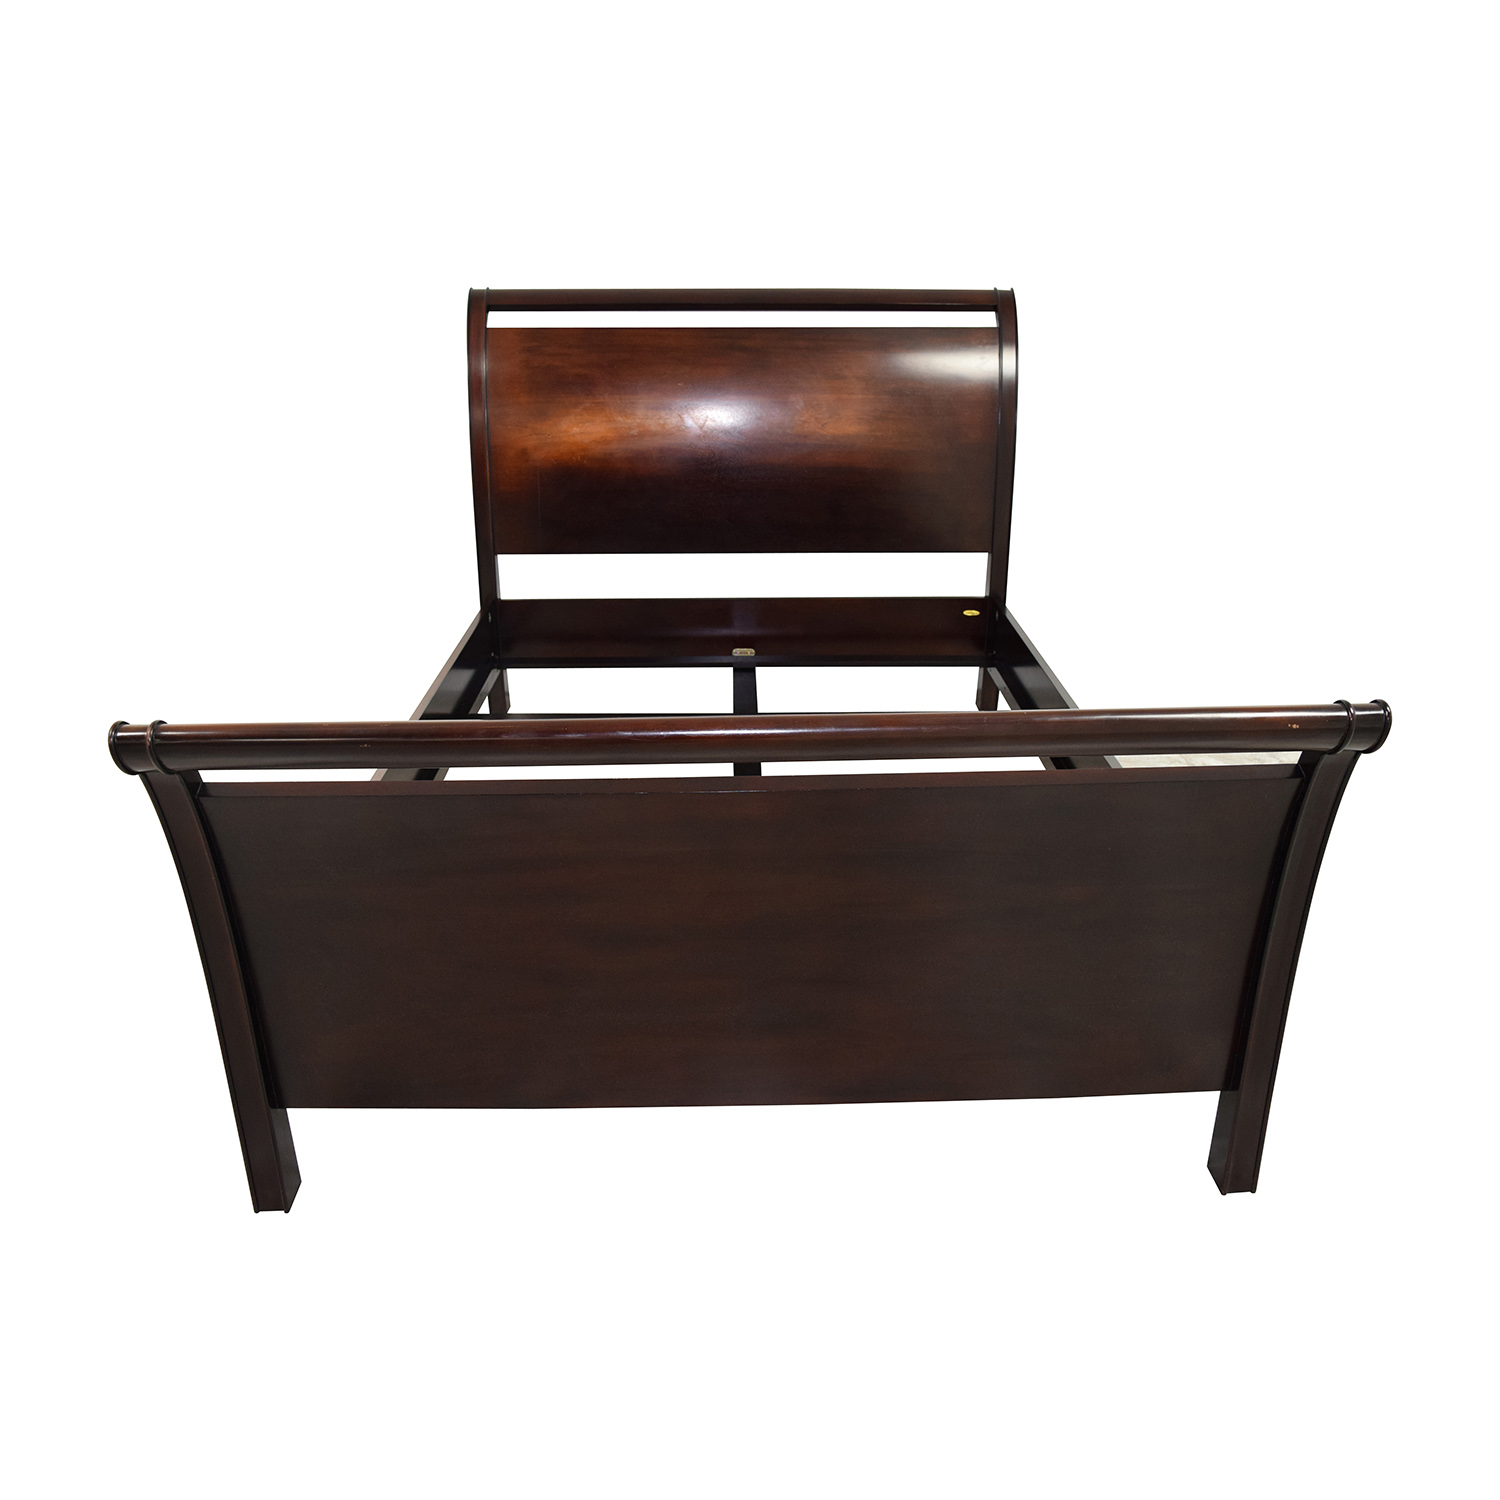 shop Crate and Barrel Crate and Barrel Wood Queen Sleigh Bed online